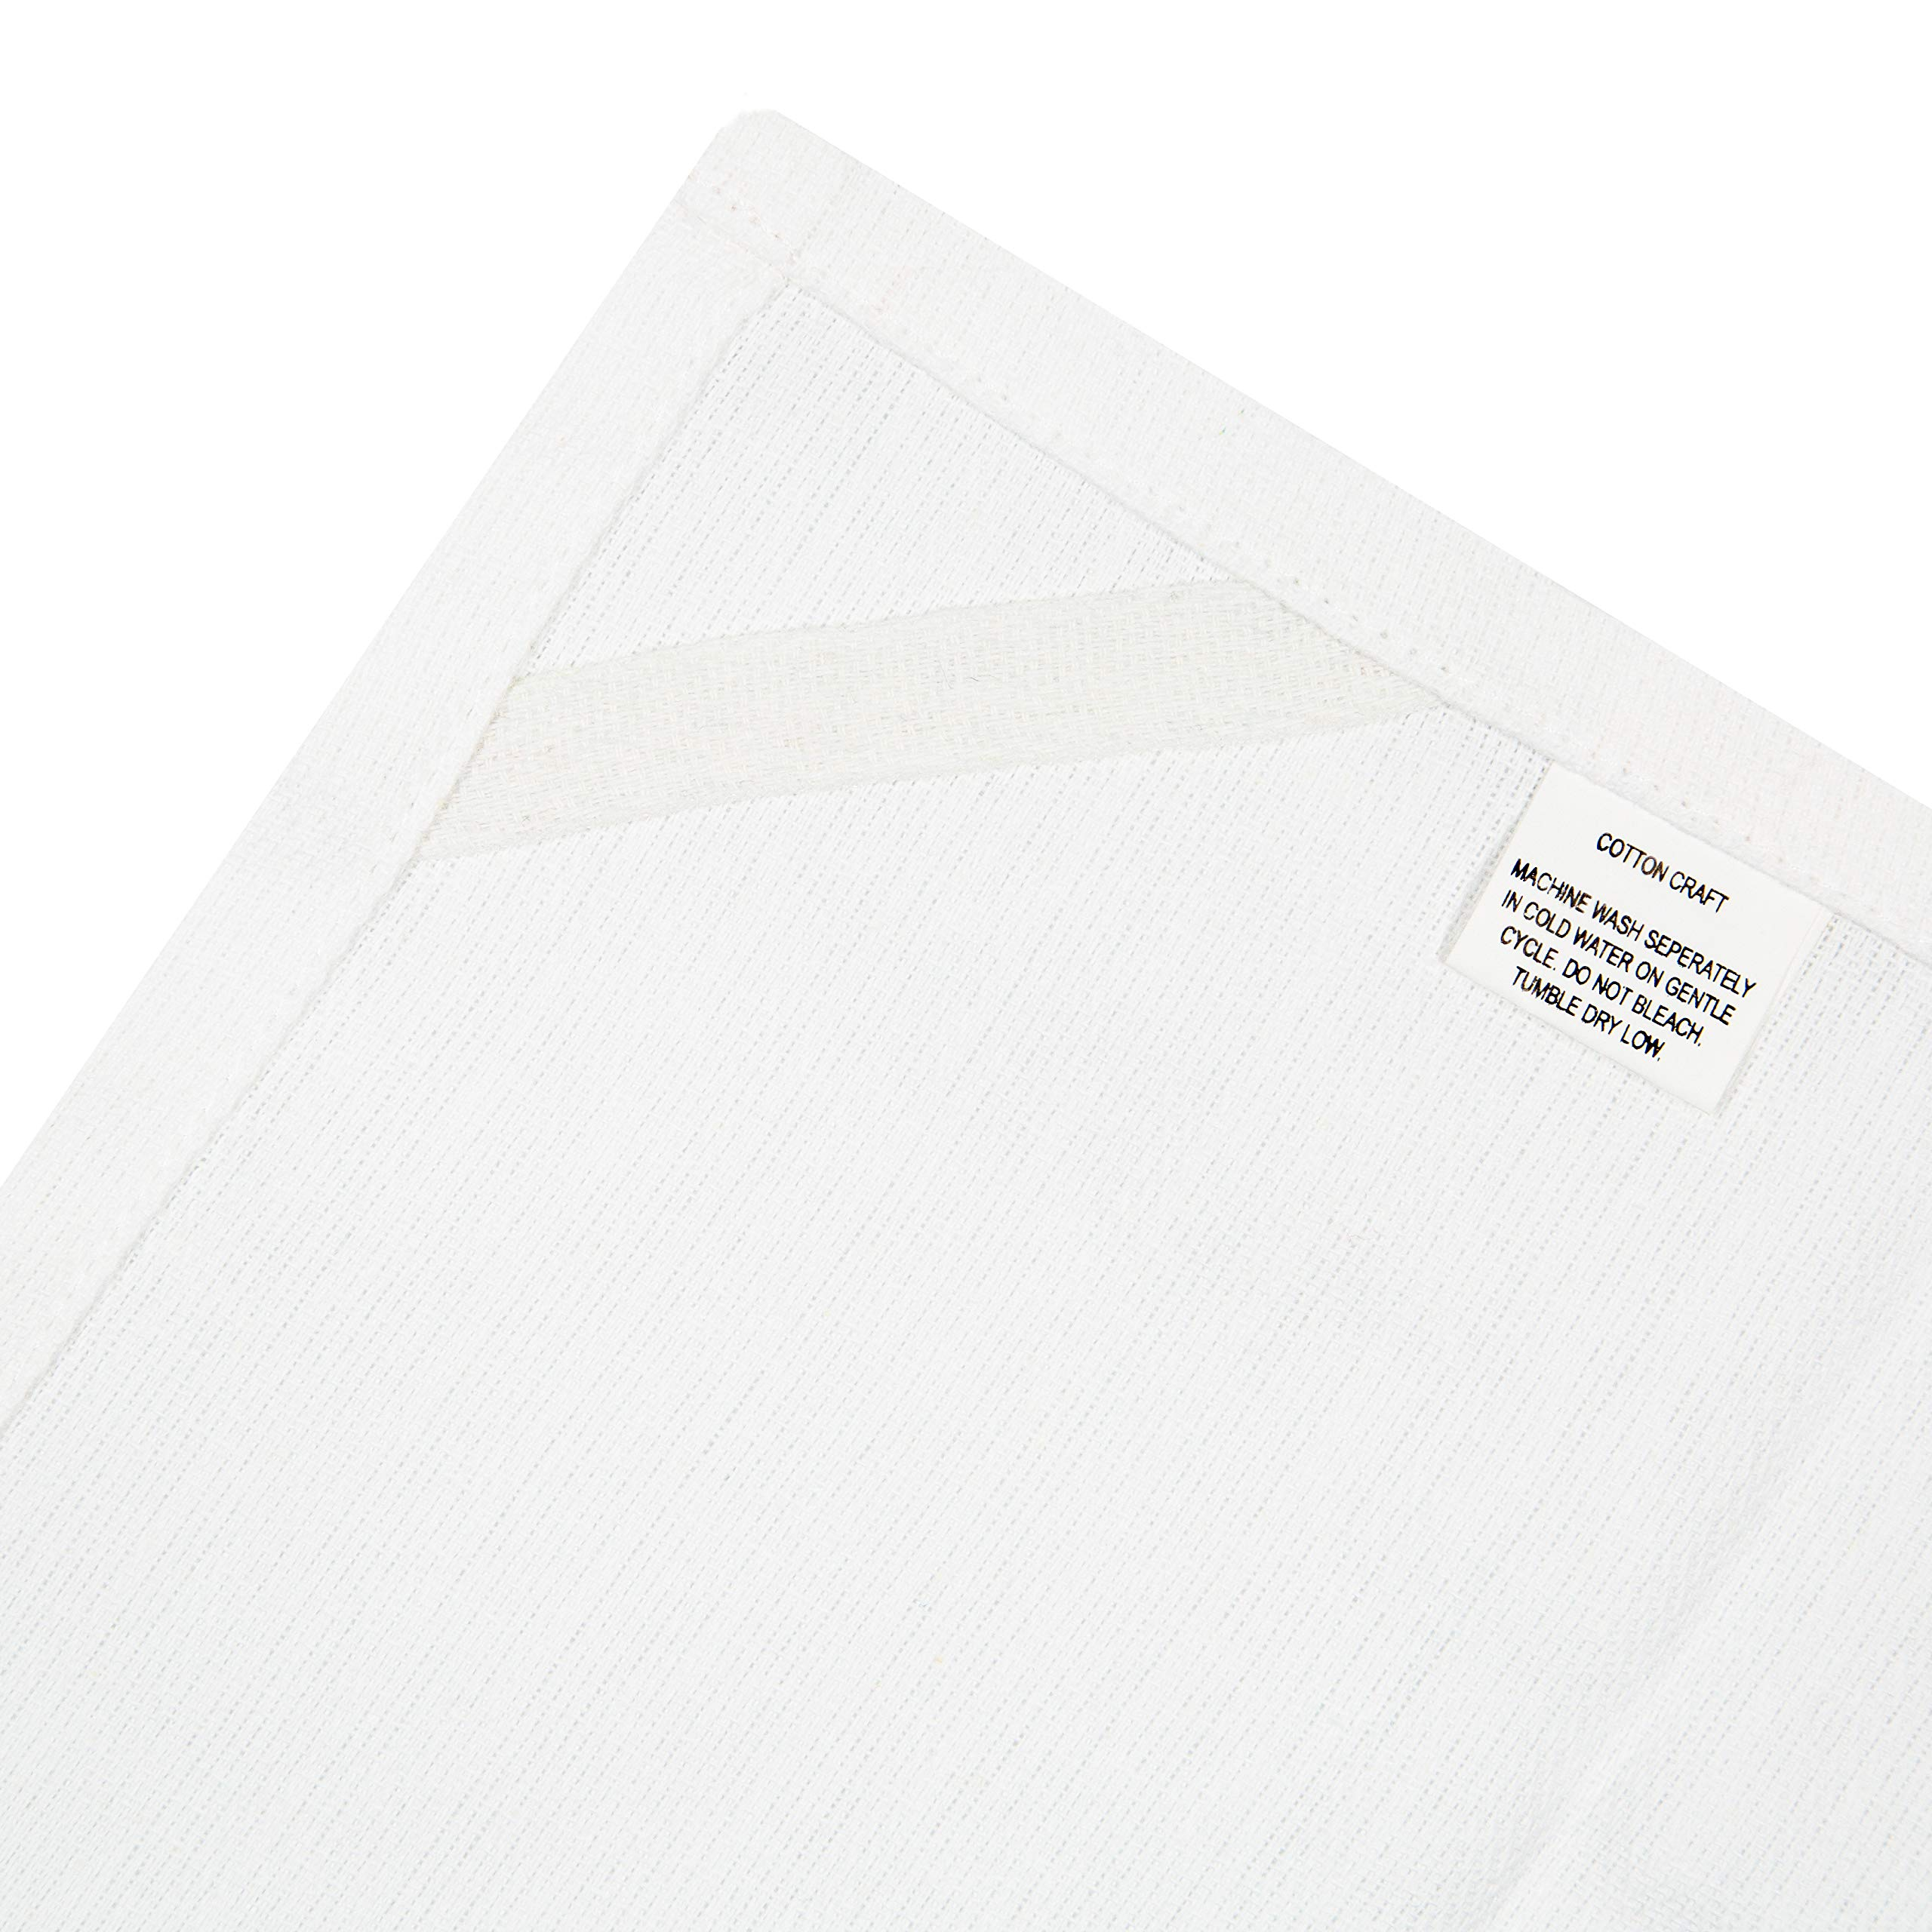 Cotton Craft - Scandia Stripe Charcoal & White 12 Pack Superior Professional Grade Kitchen Dish Tea Towels - May Also be Used as Napkins - 16x28 30 Ounces Pure 100% Cotton, Low Lint, Sturdy Weave by Cotton Craft (Image #3)